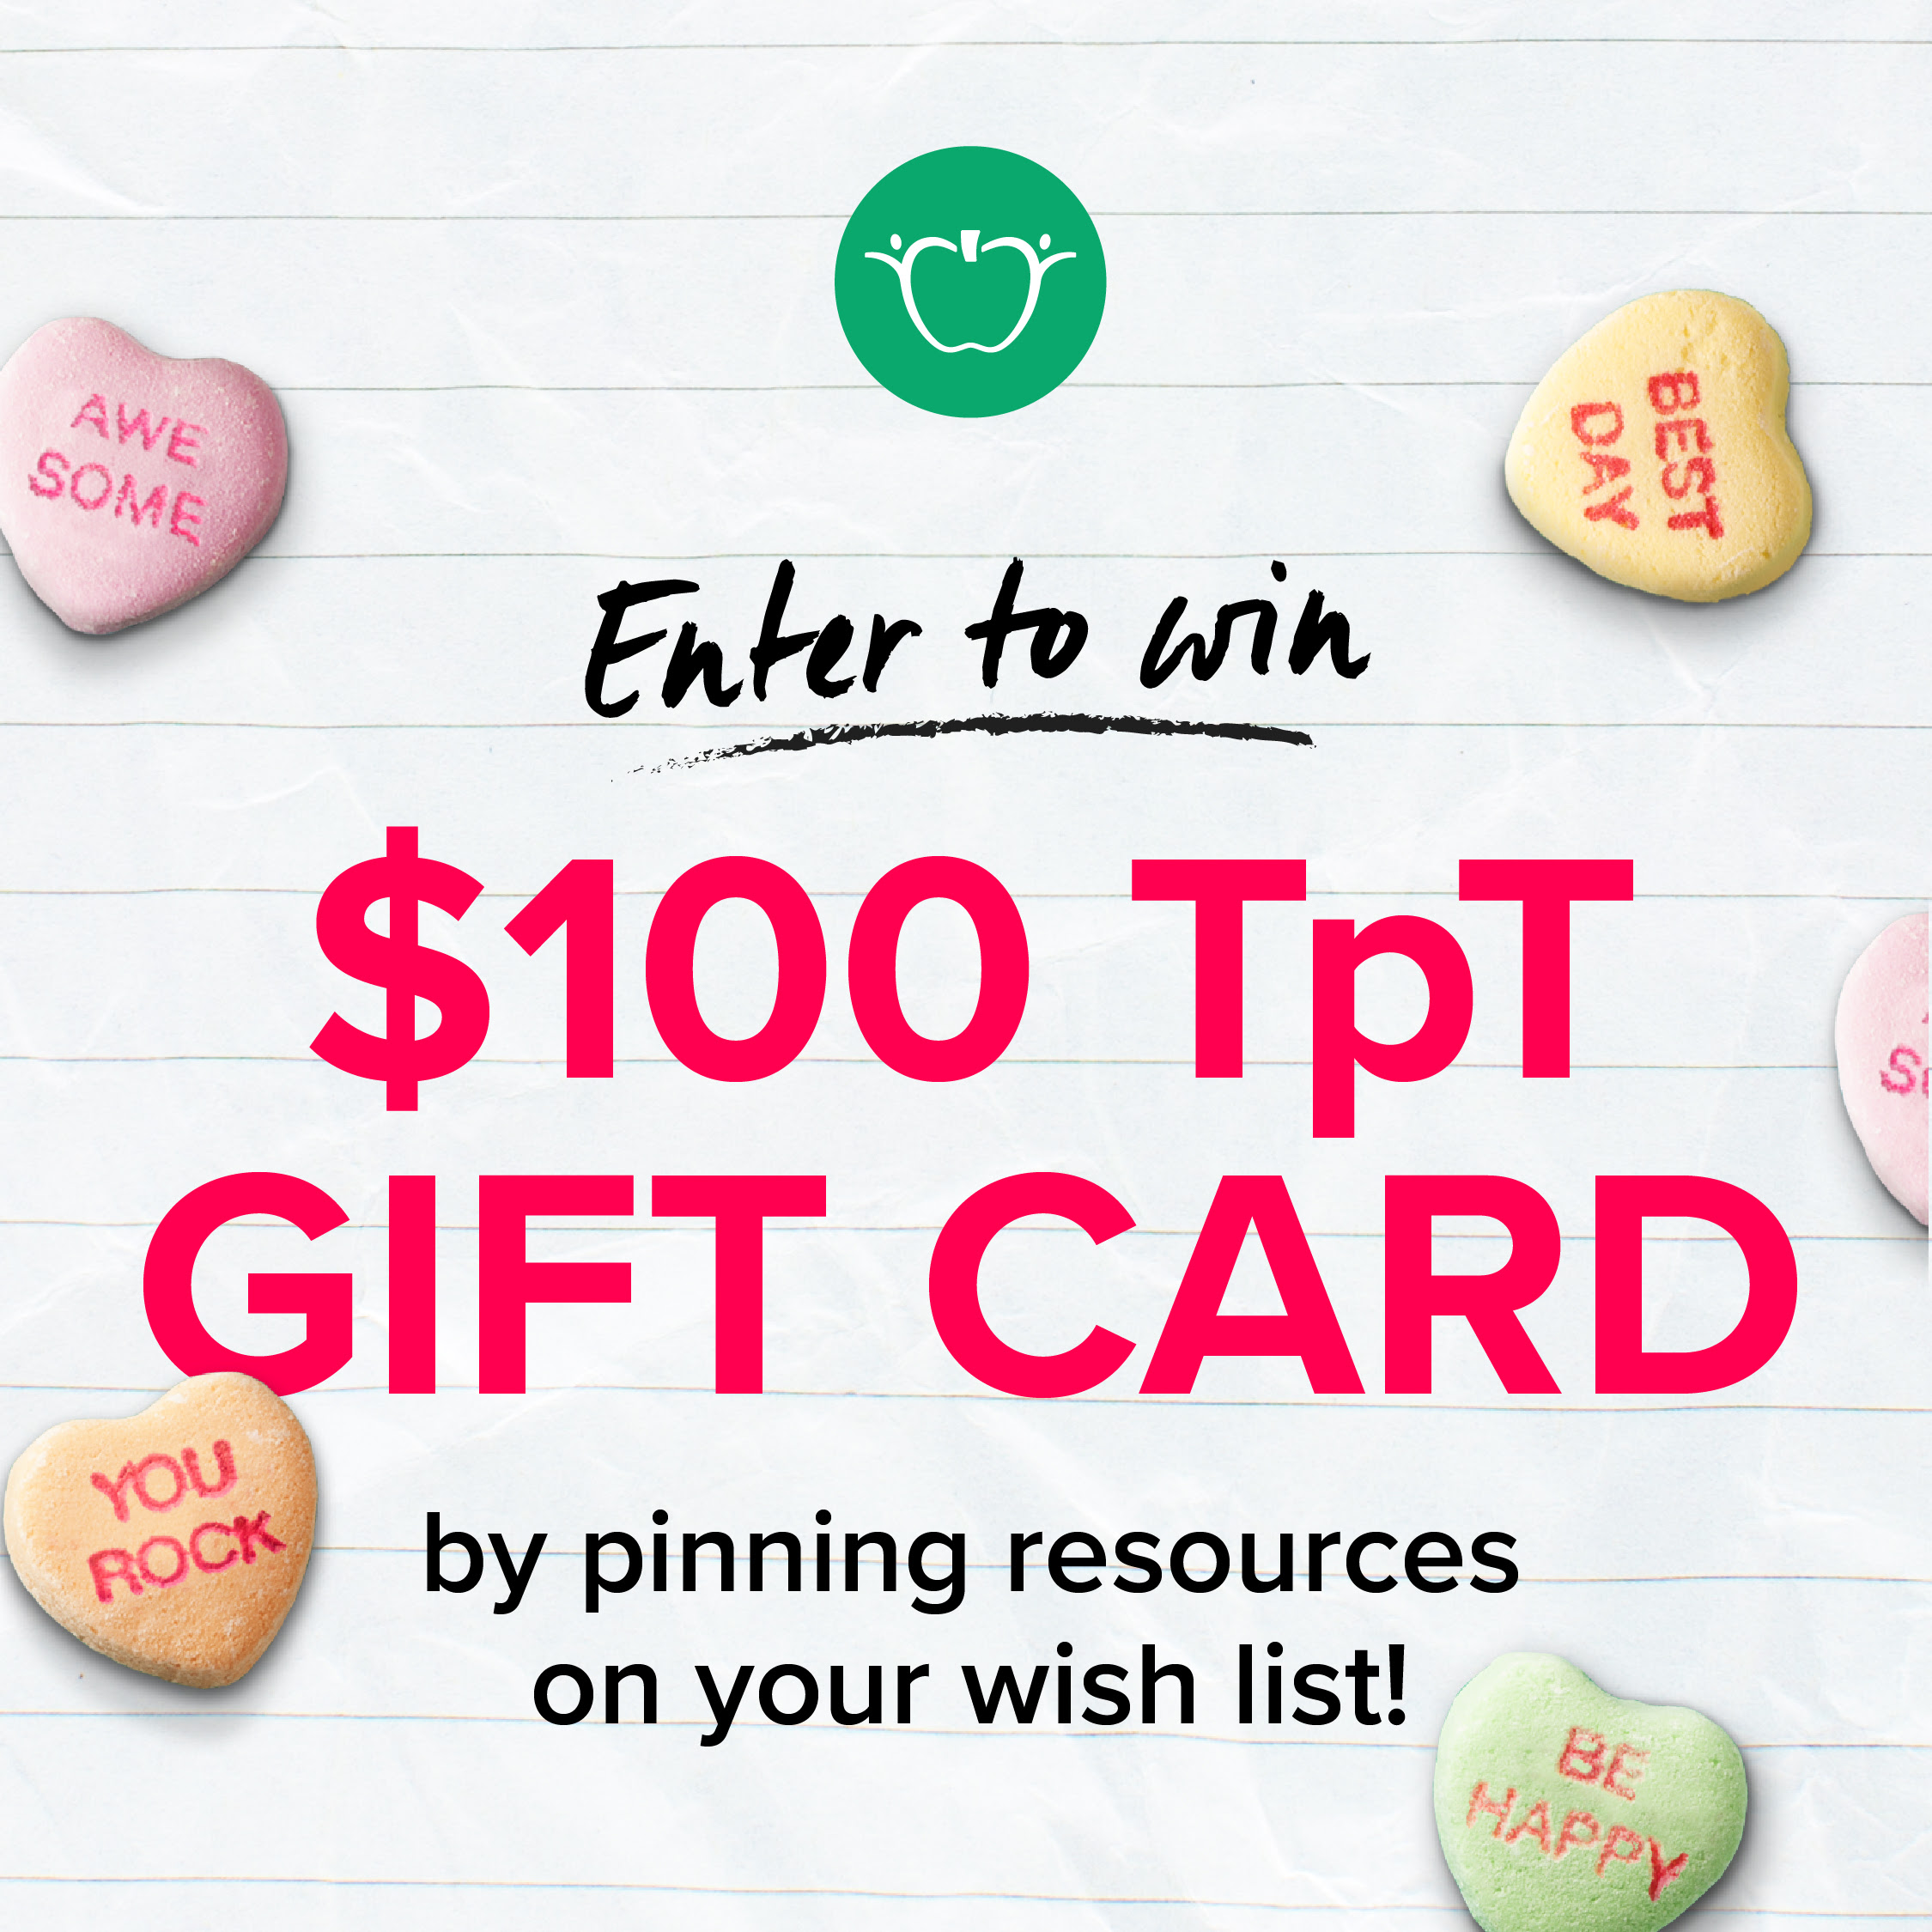 Pin for the Chance to Win